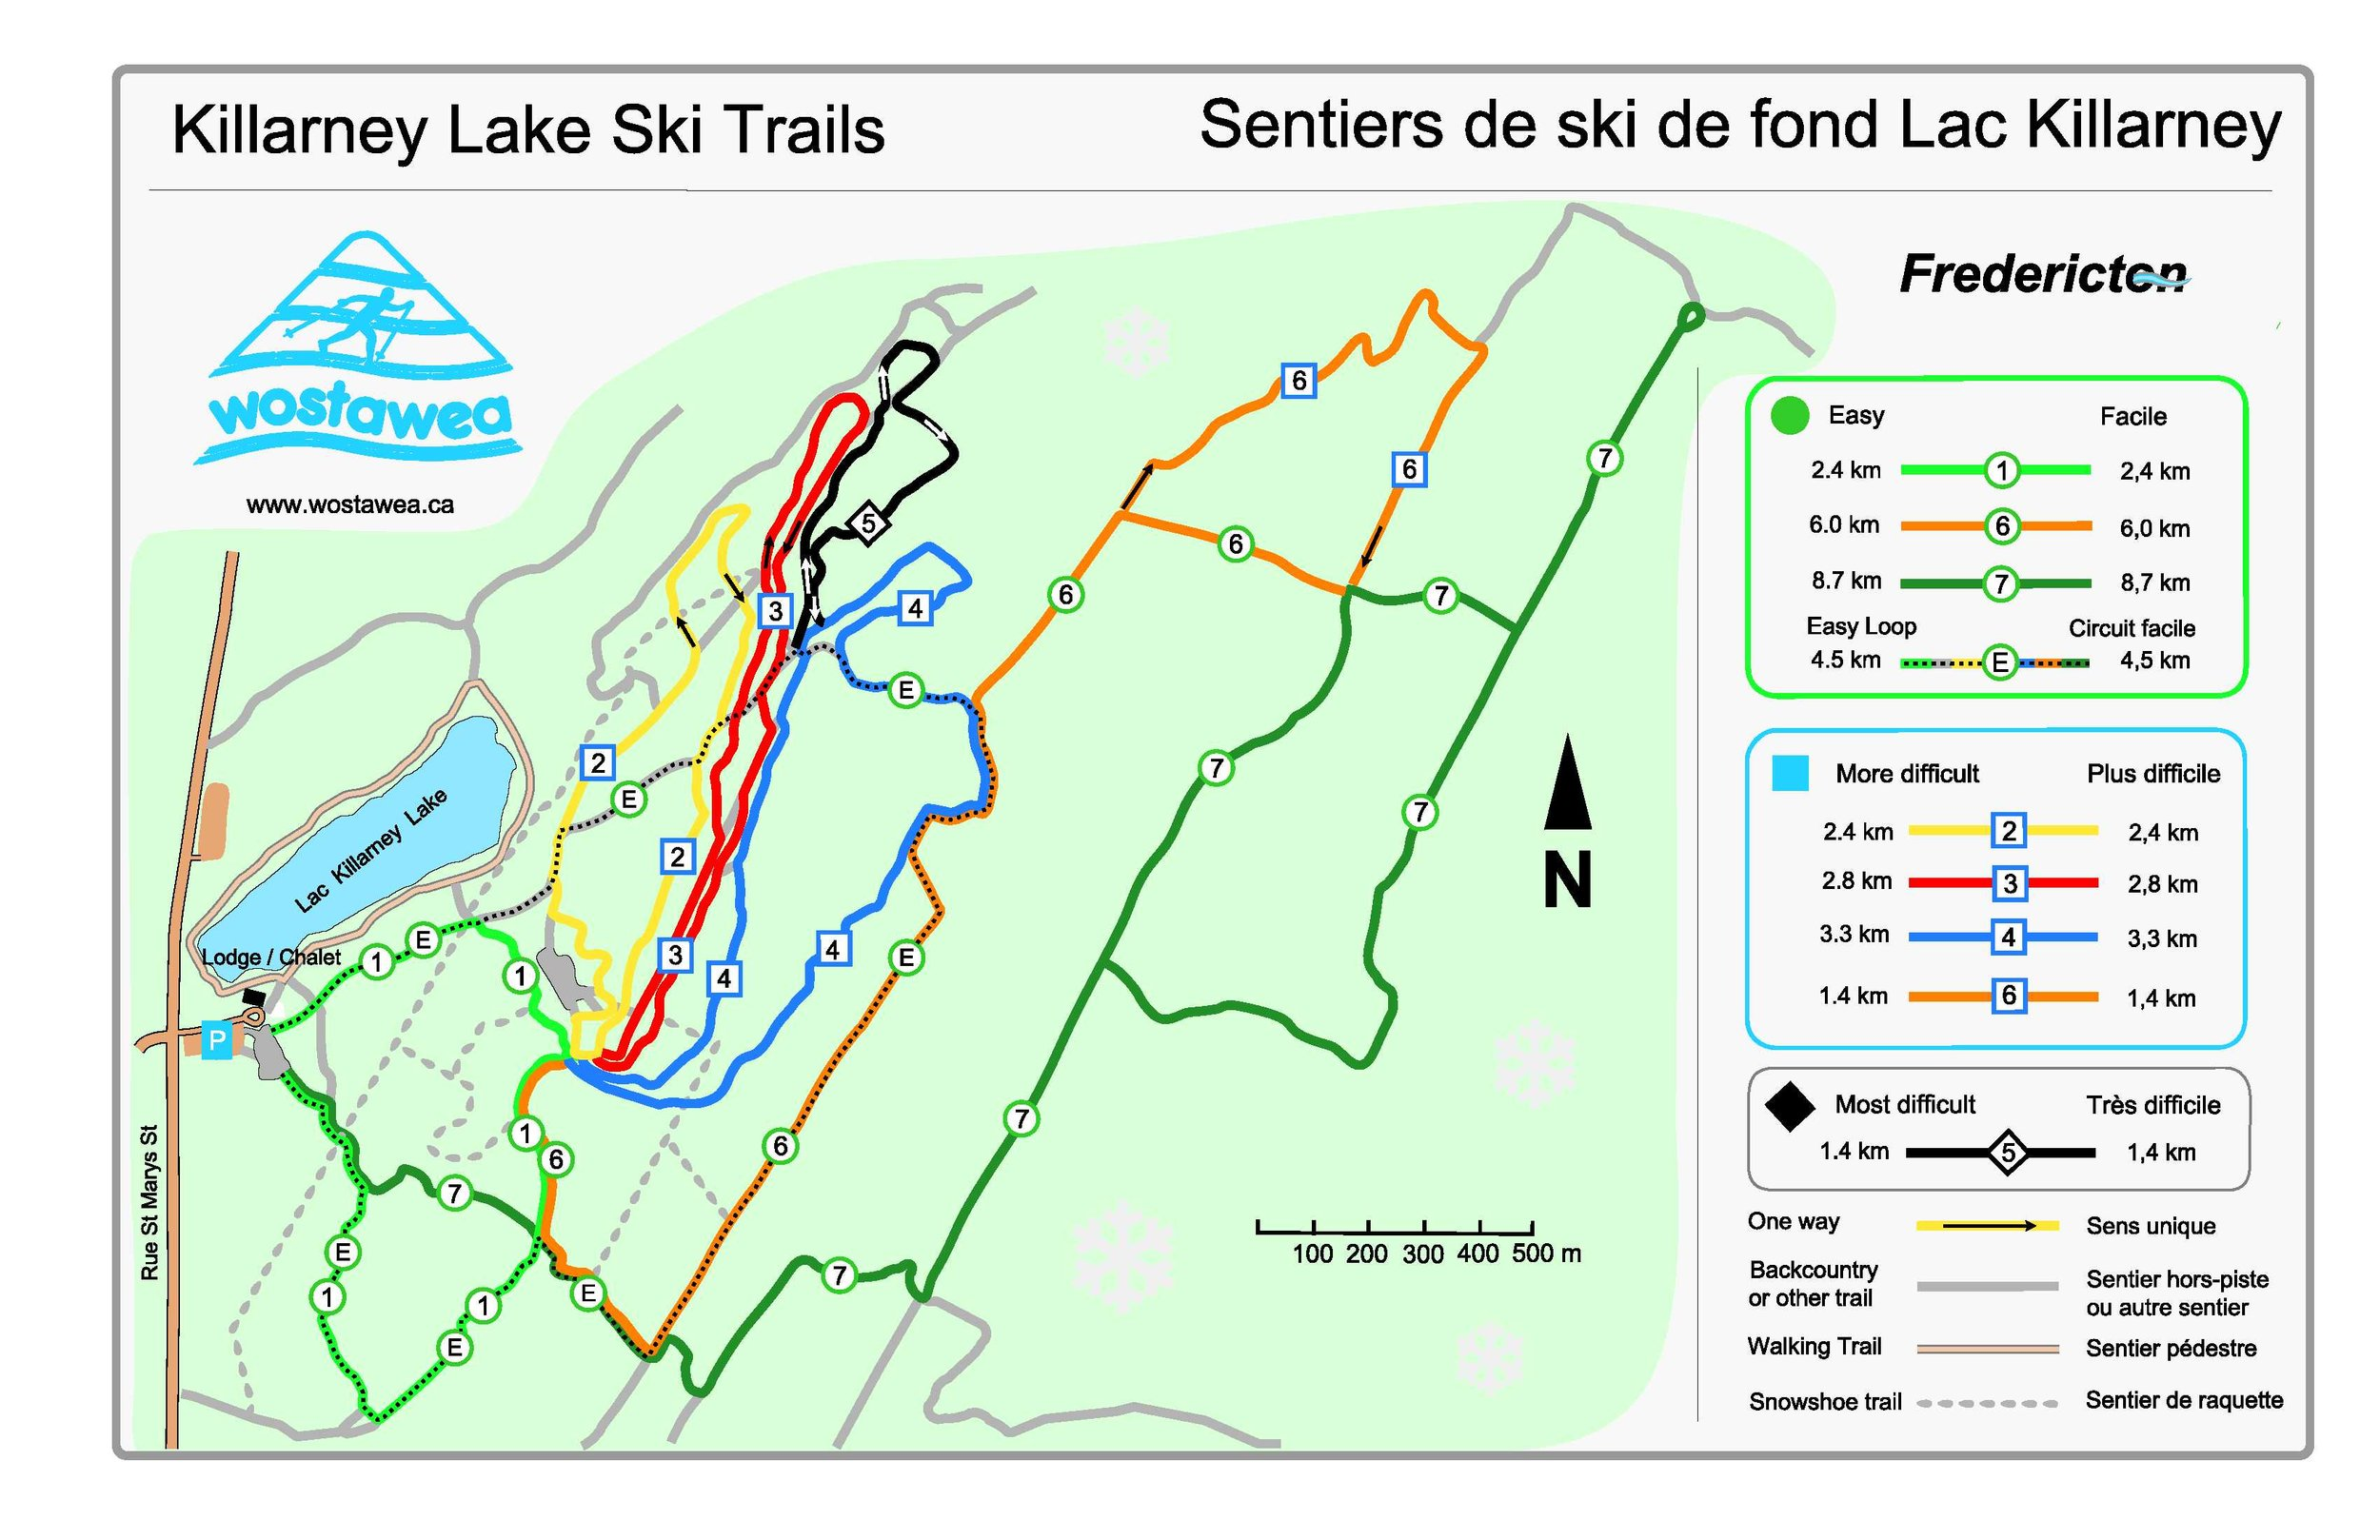 Killarney ski trails 2017 draft 7.jpg